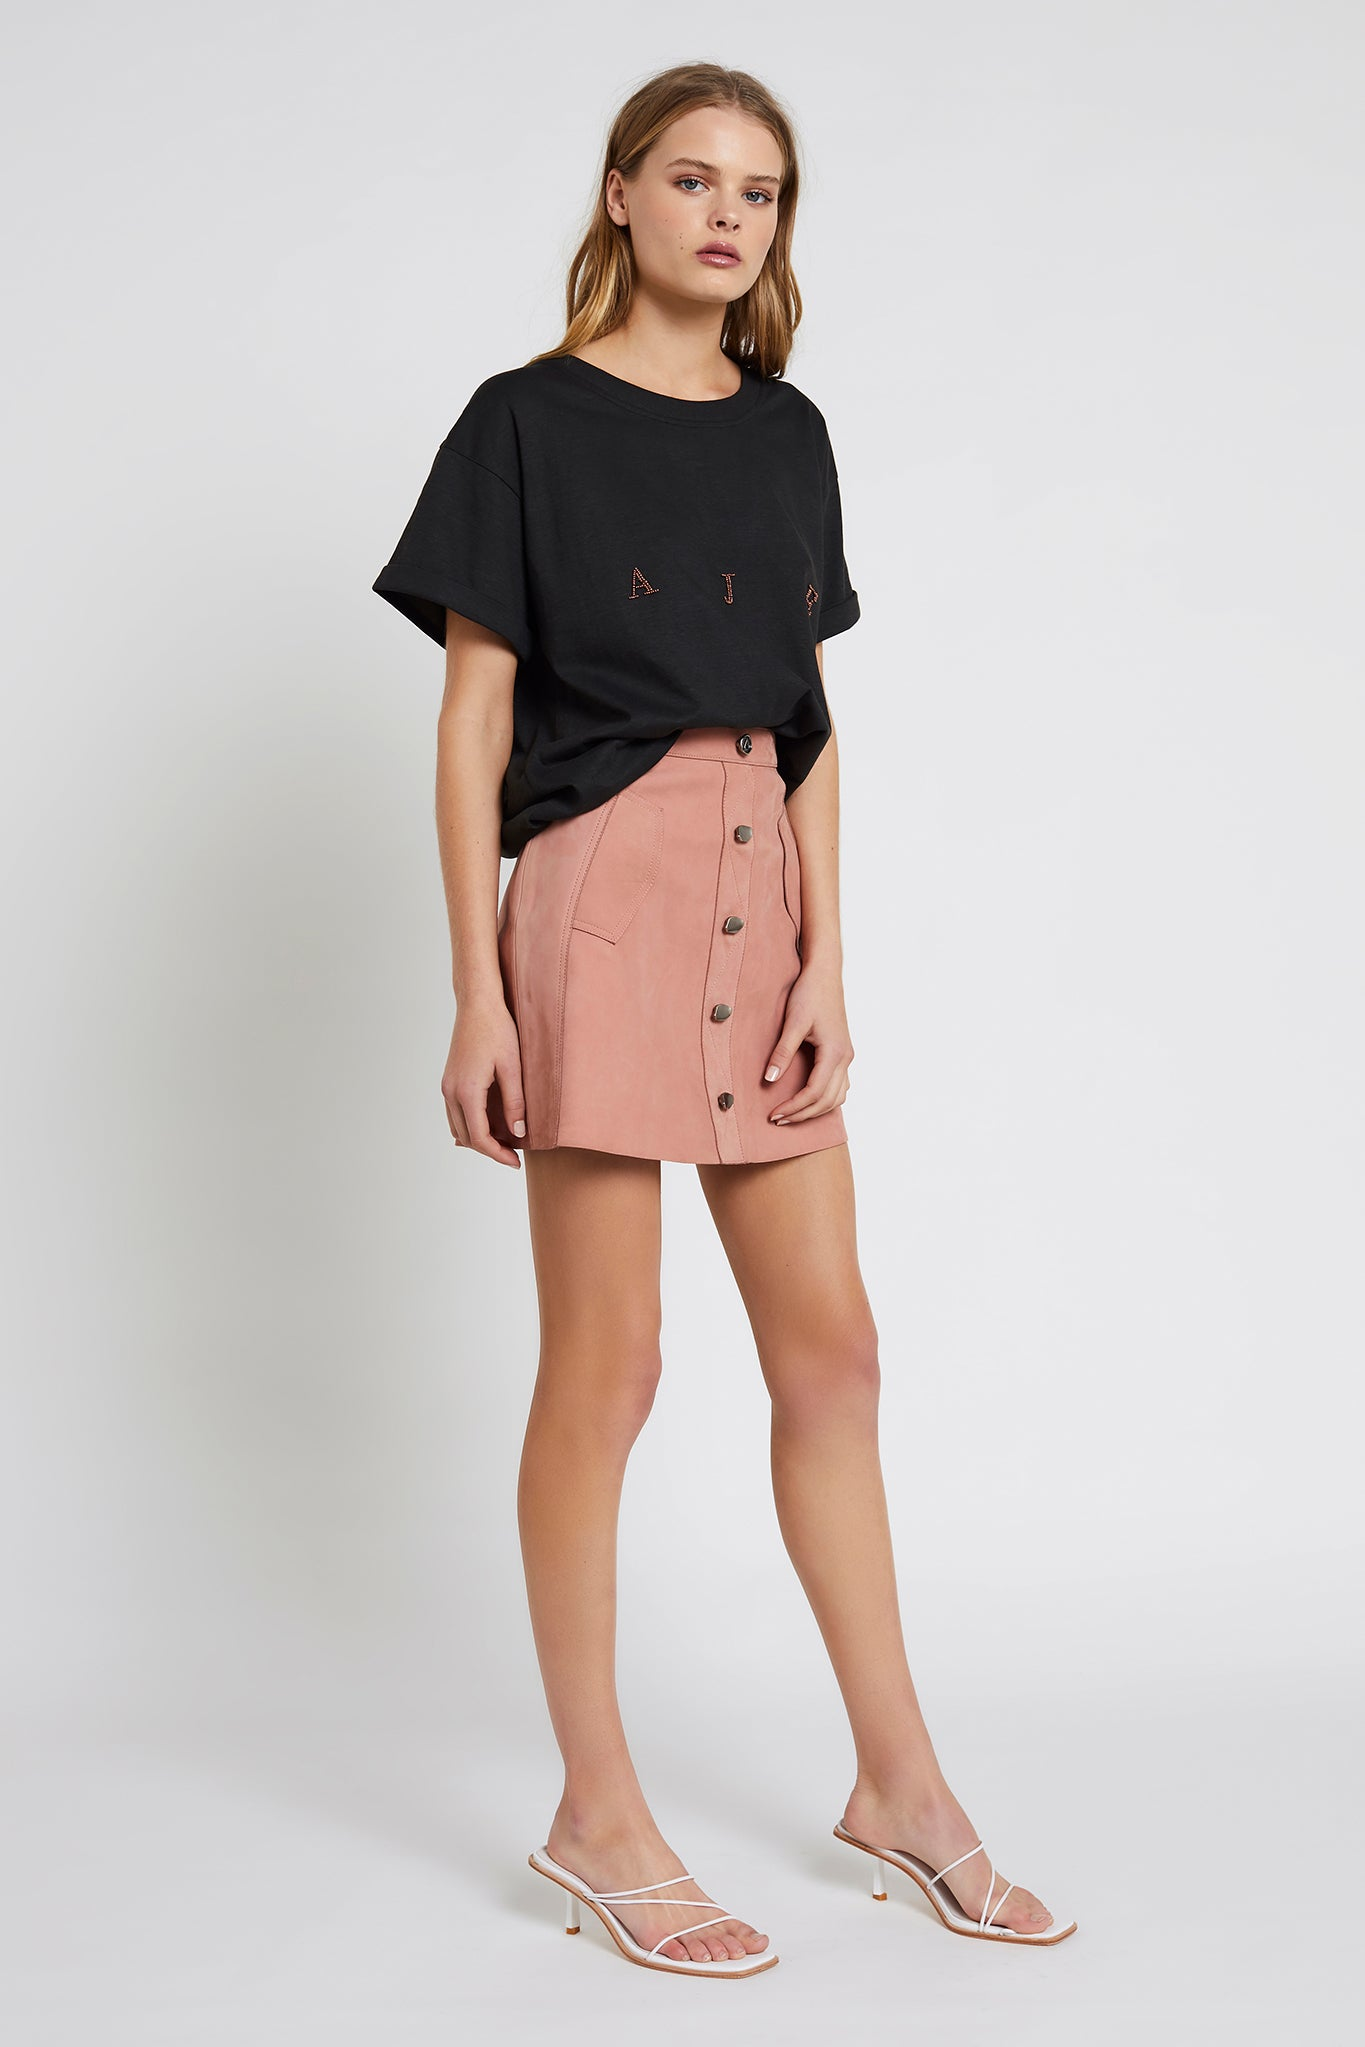 Marina Leather Mini Skirt Product View